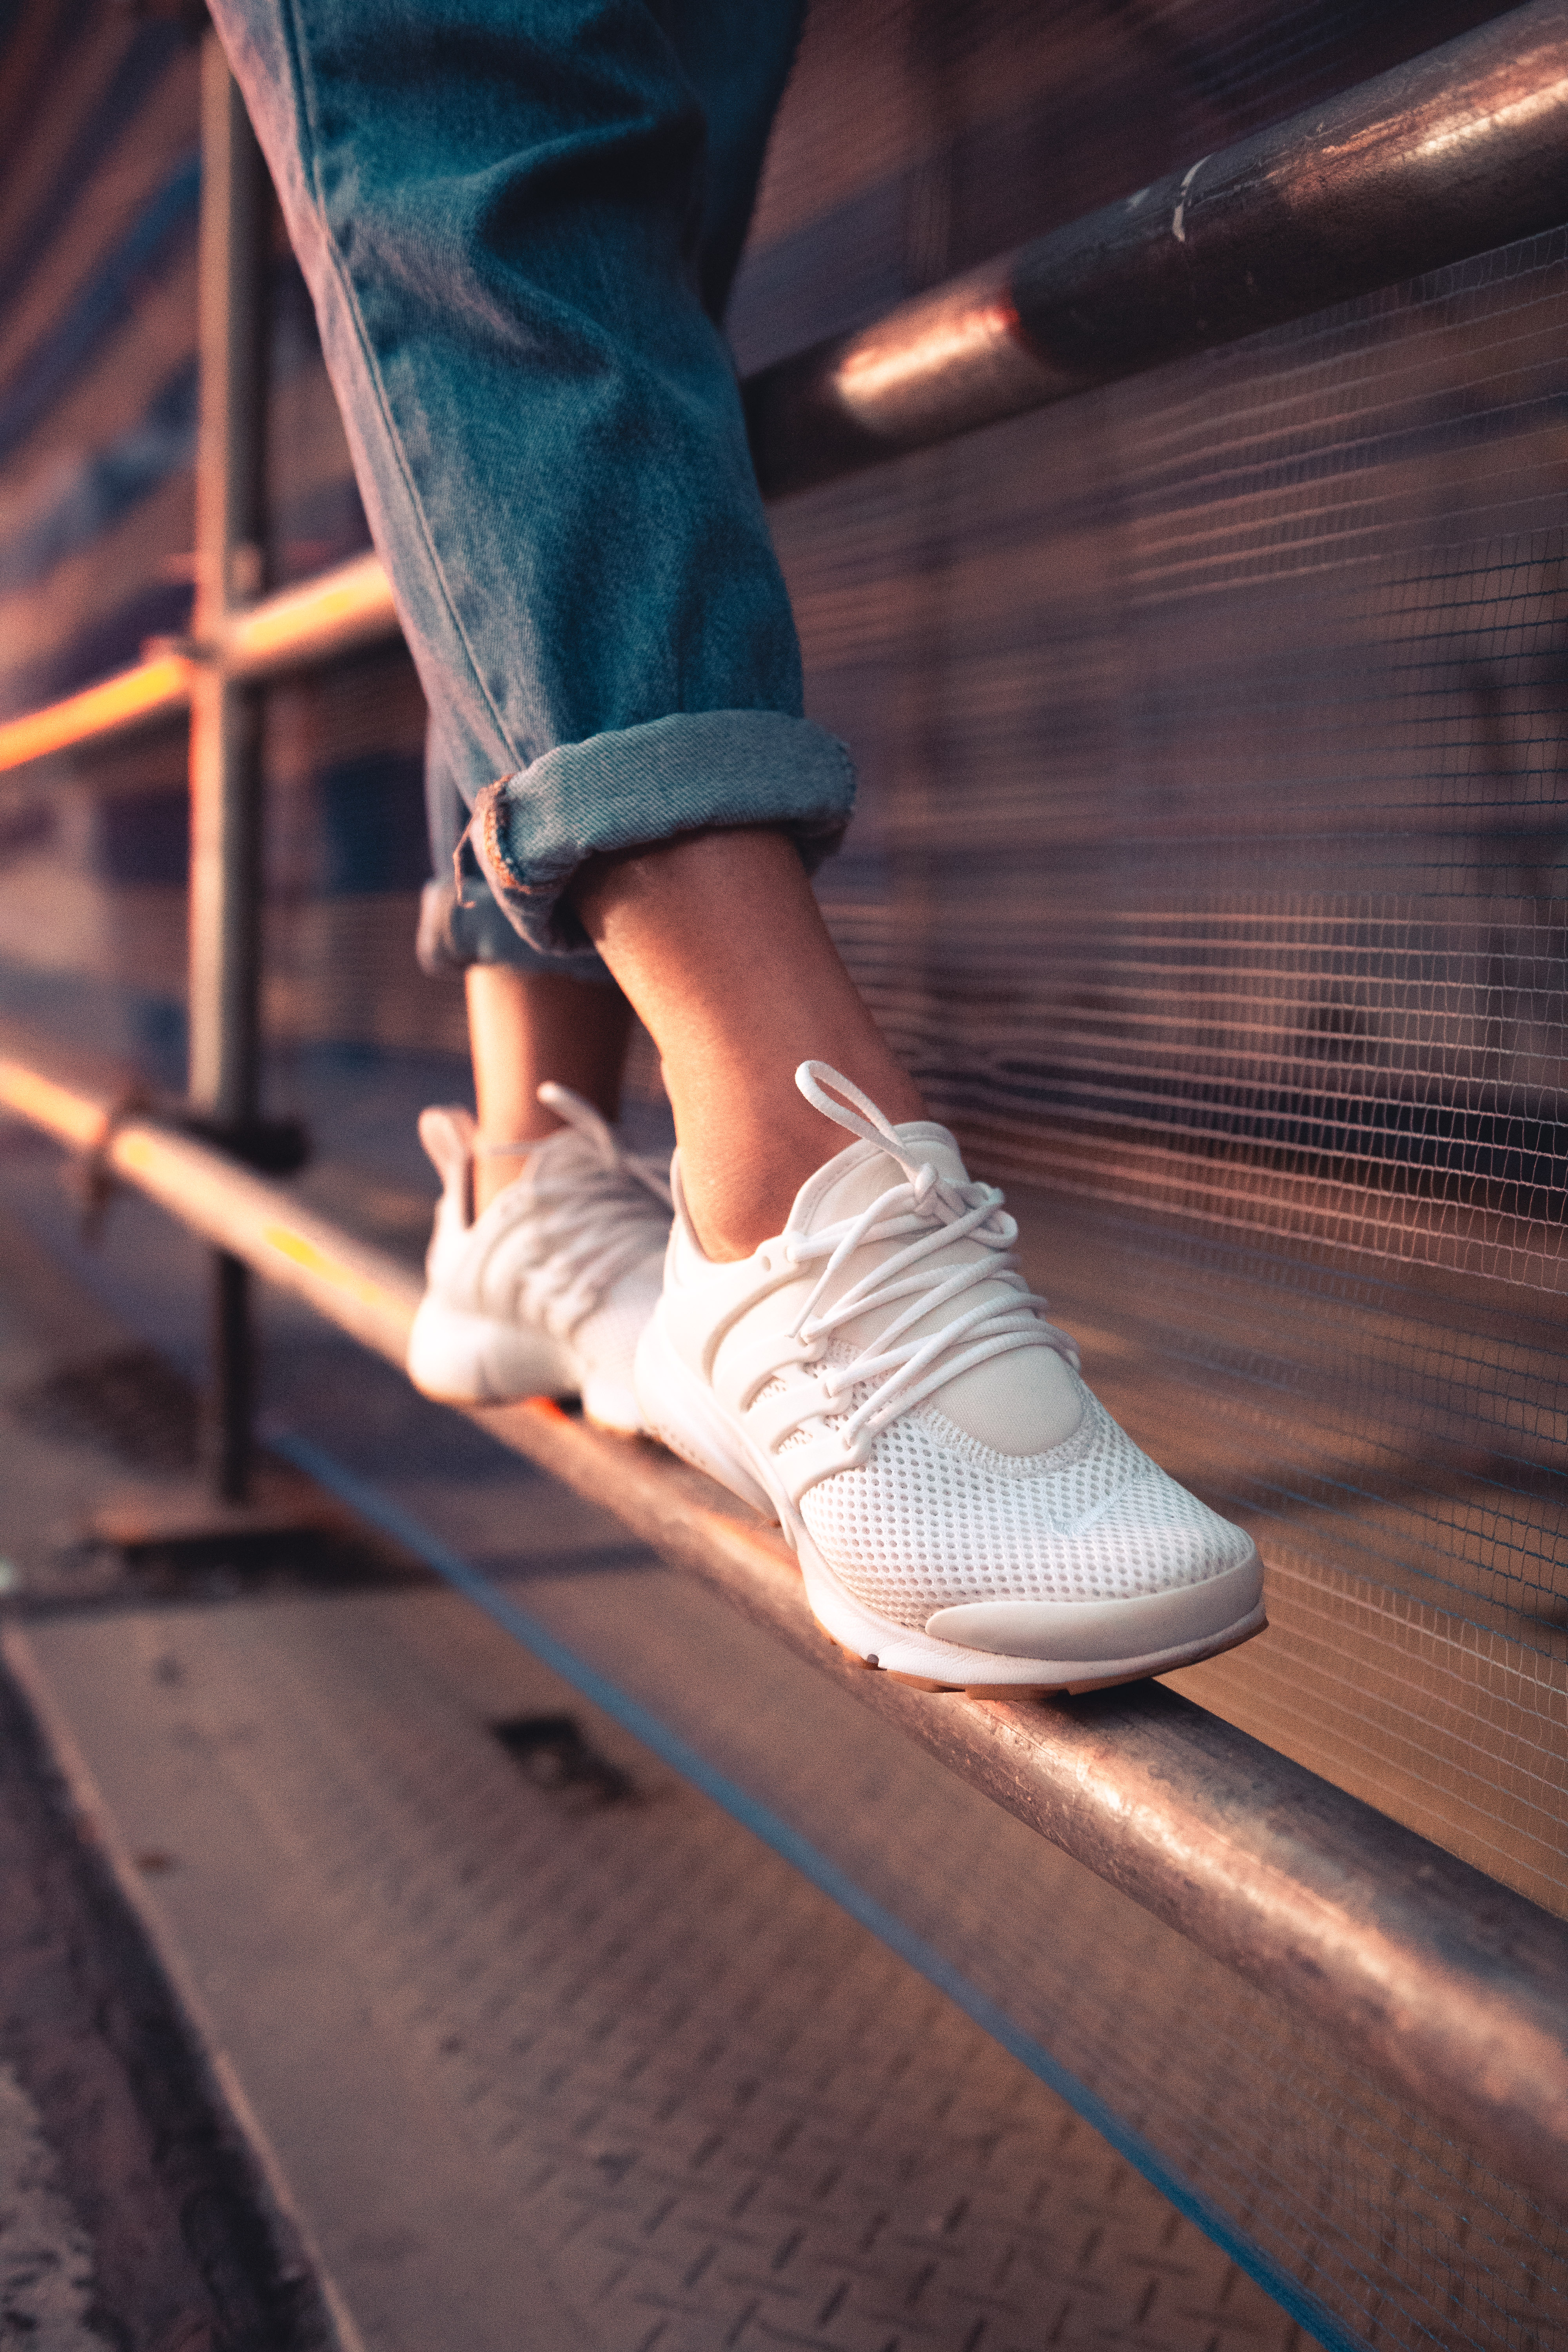 person in blue jeans and white sneakers standing on metal railings